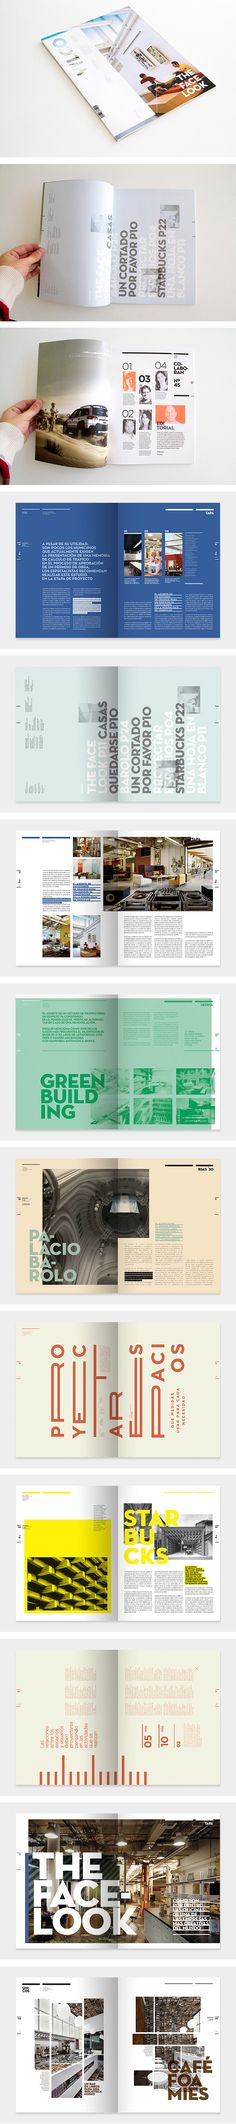 Revista Vuelco. This designer really thinks outside the box. Amazing layouts!